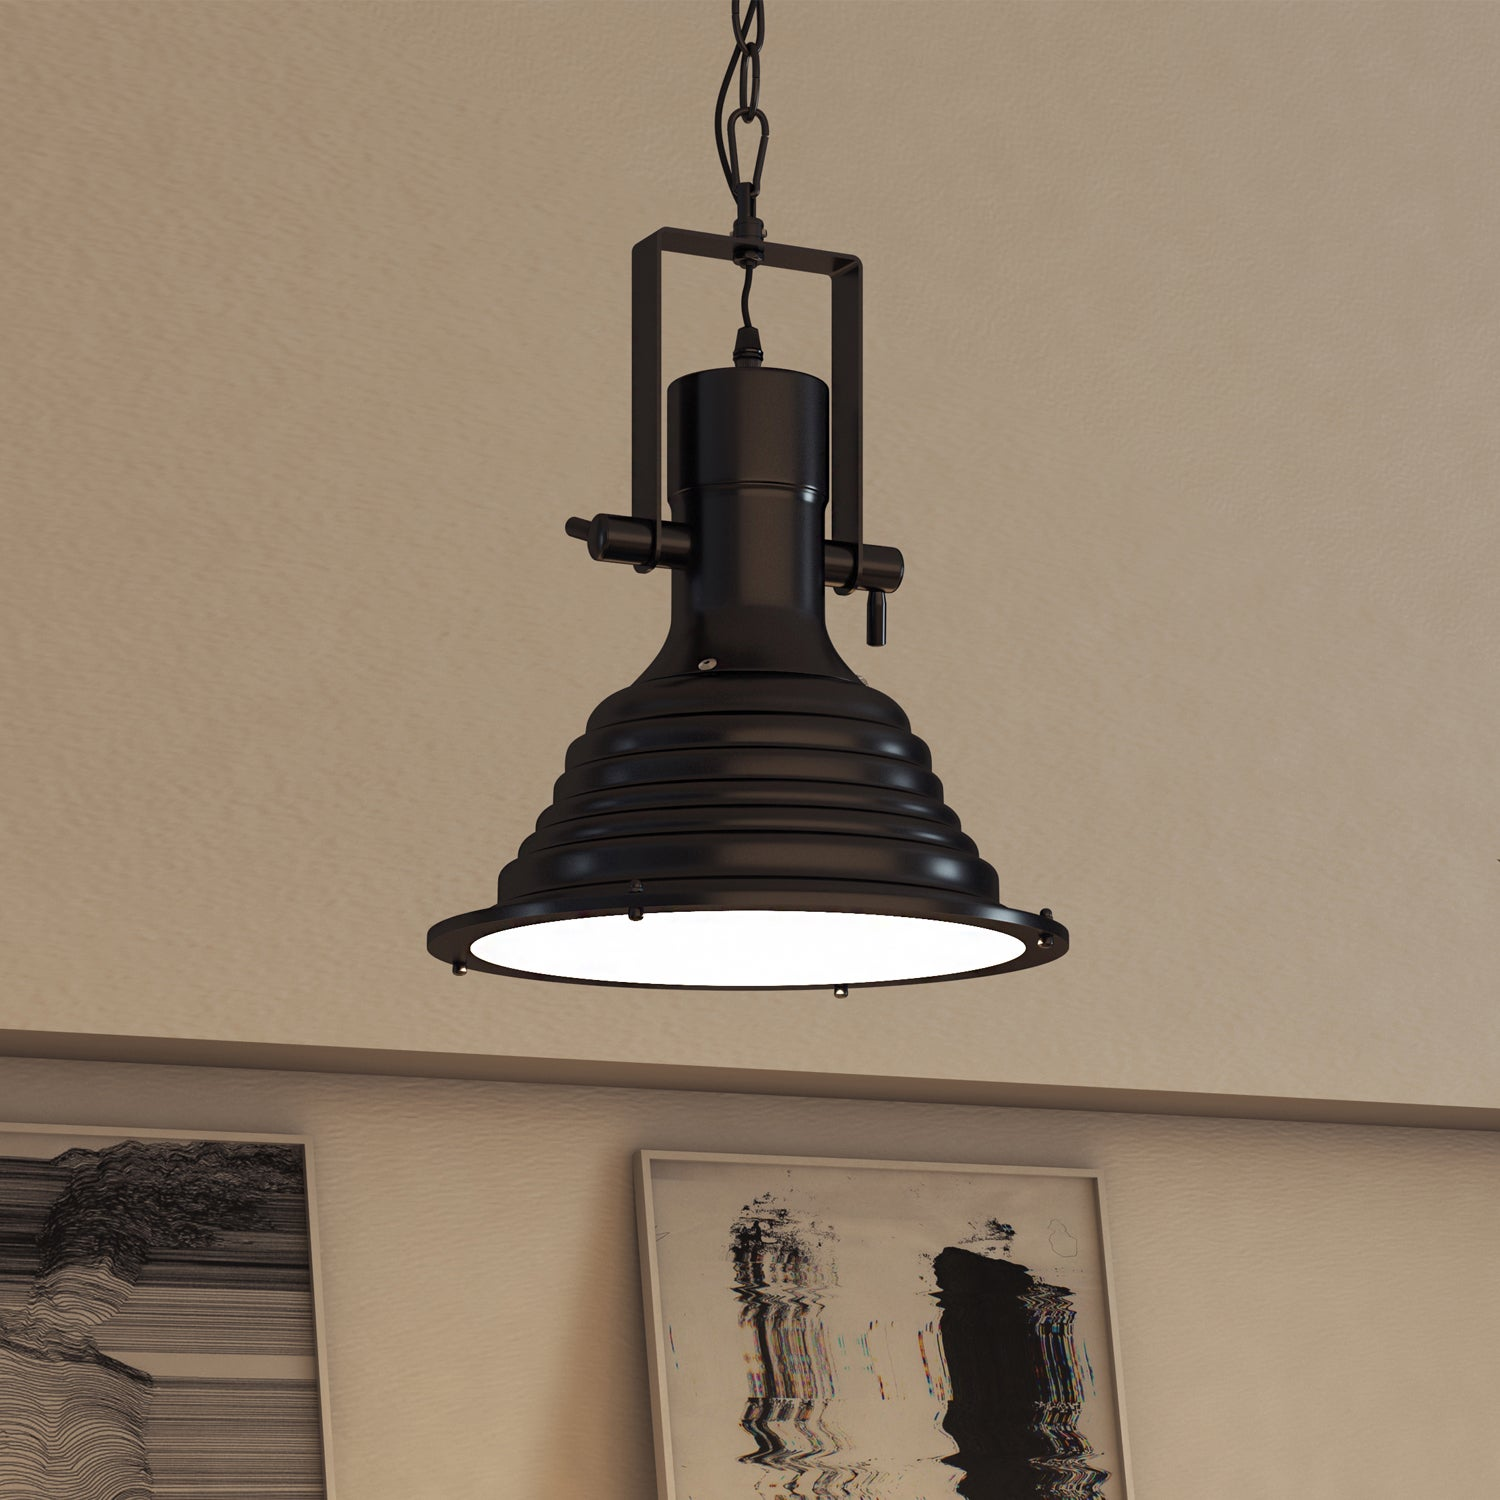 Vonn Lighting Dorado Led Pendant Light Adjule Hanging With Ribbing In Architectural Bronze